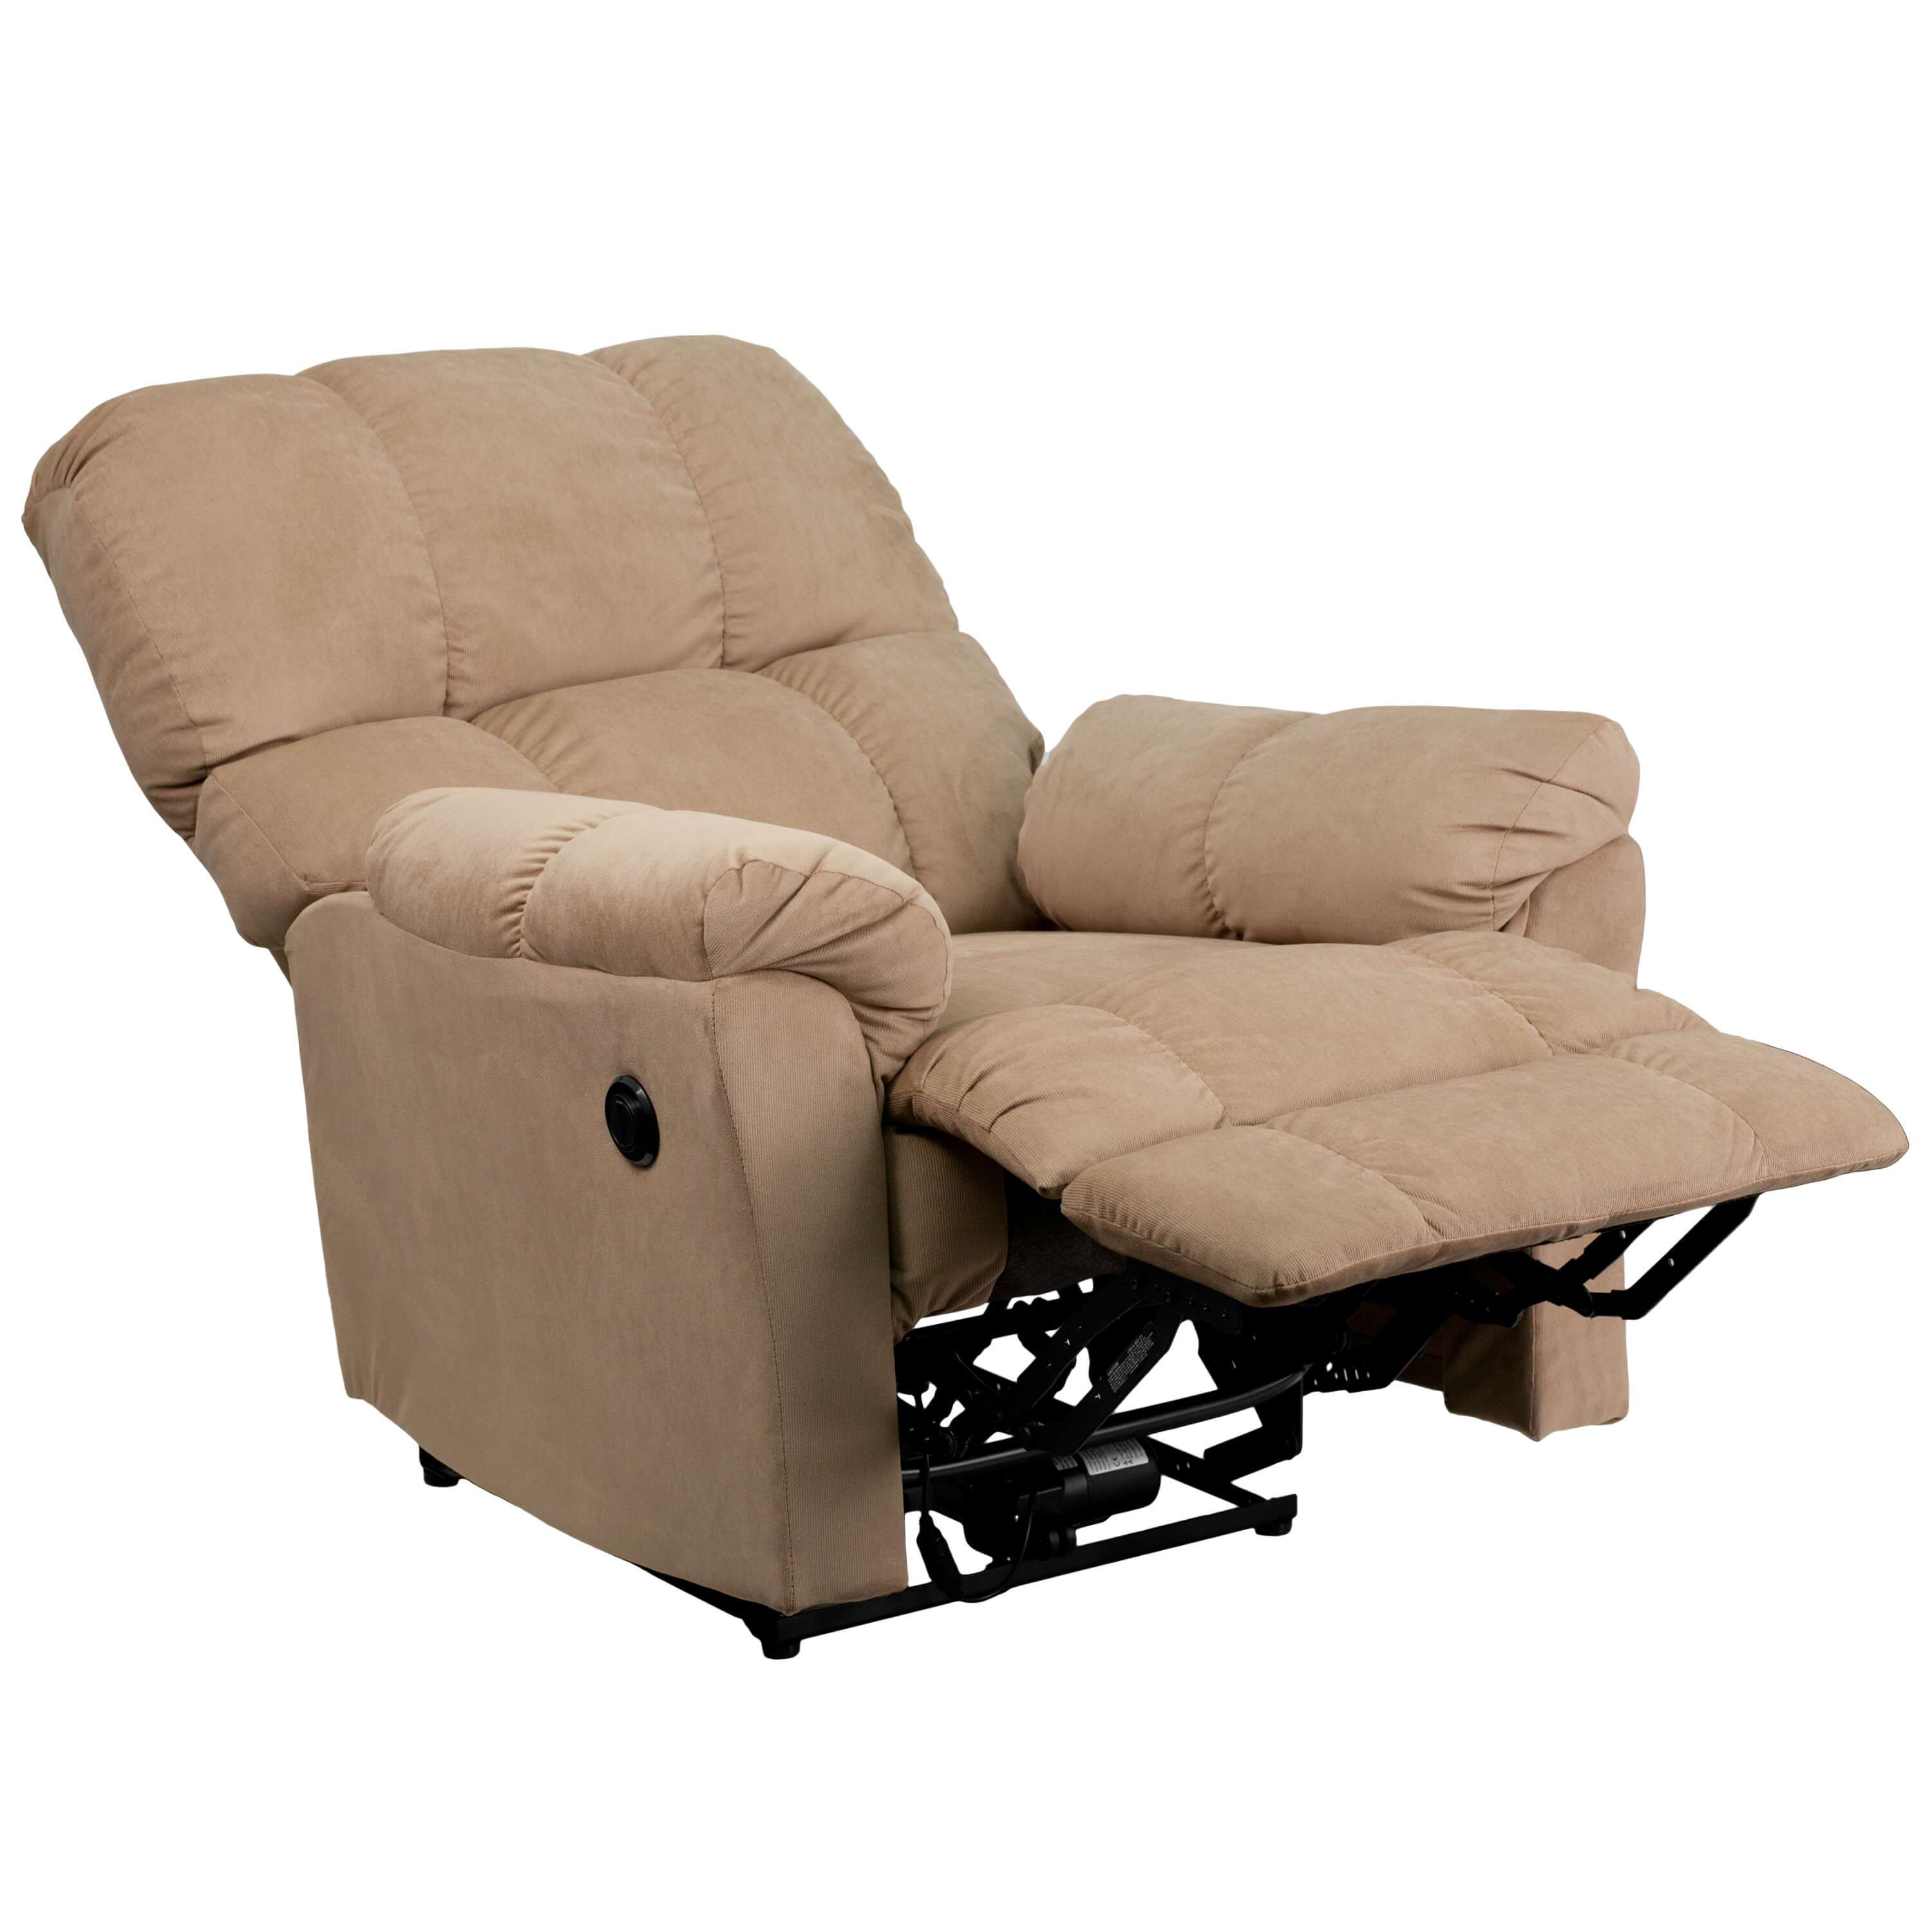 Microfiber recliner reclined view 1